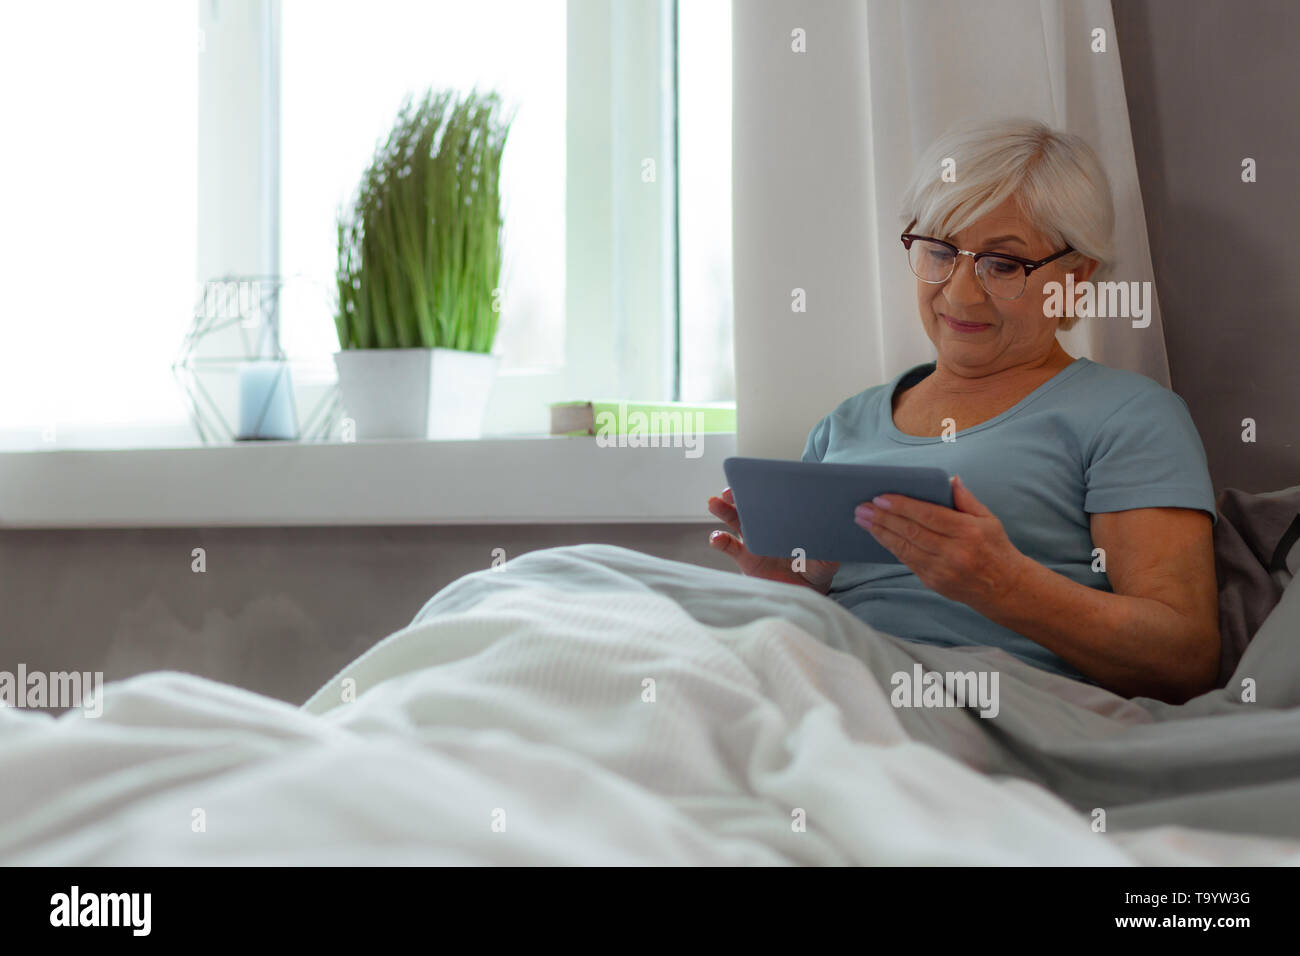 Glowing woman in blue t-shirt watching movie on a tablet - Stock Image